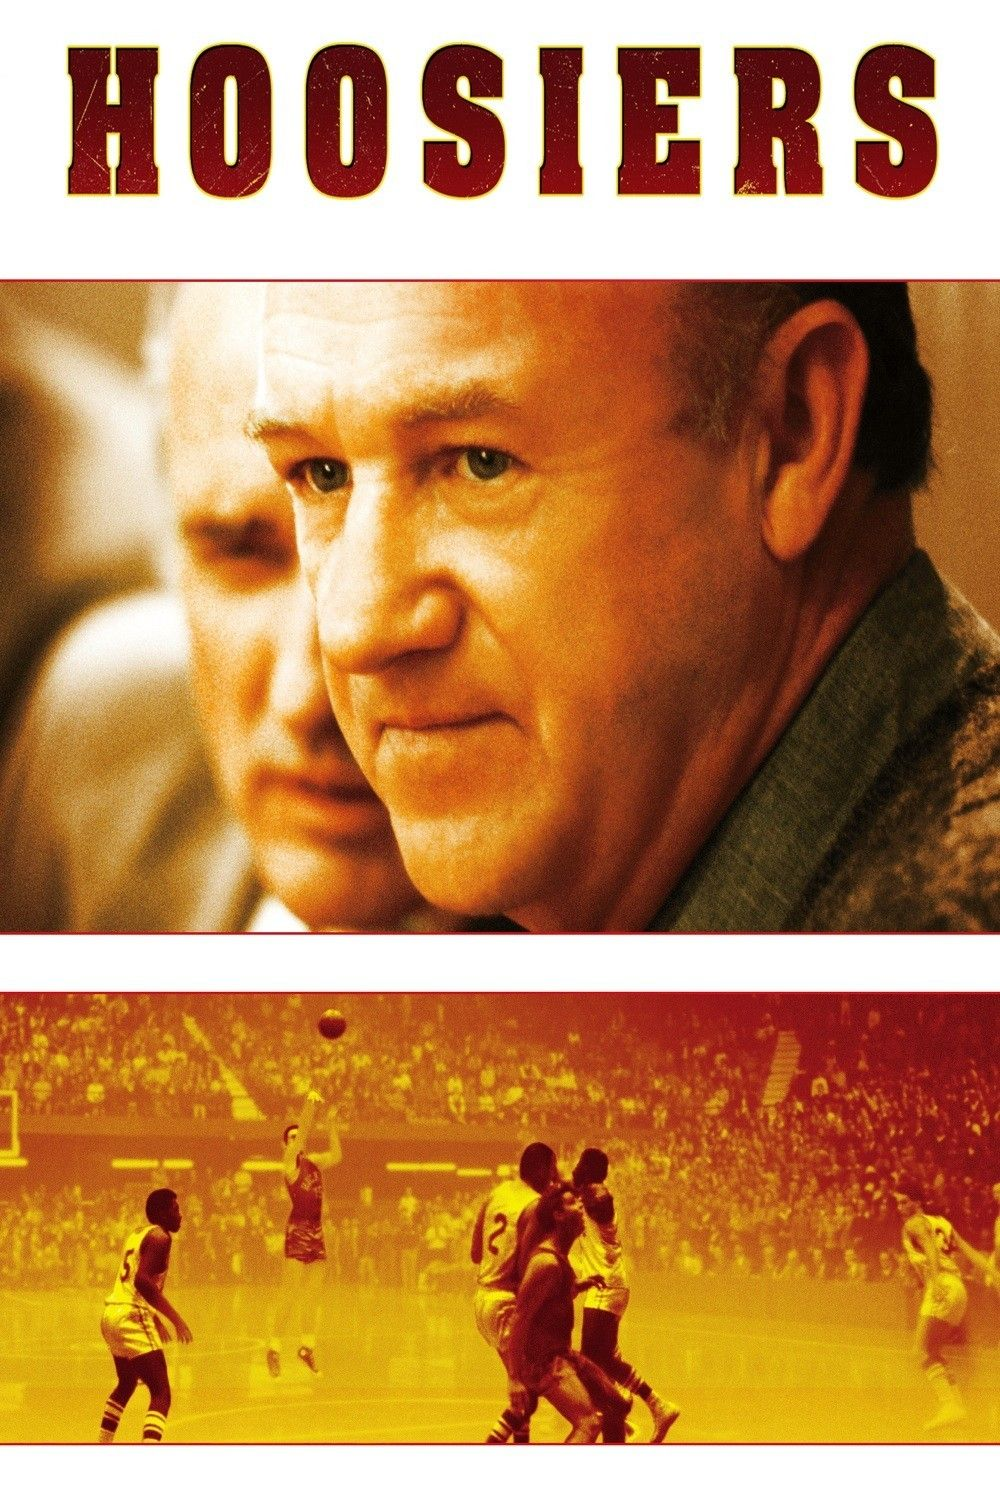 Hoosiers is a 1986 sports film written by Angelo Pizzo and